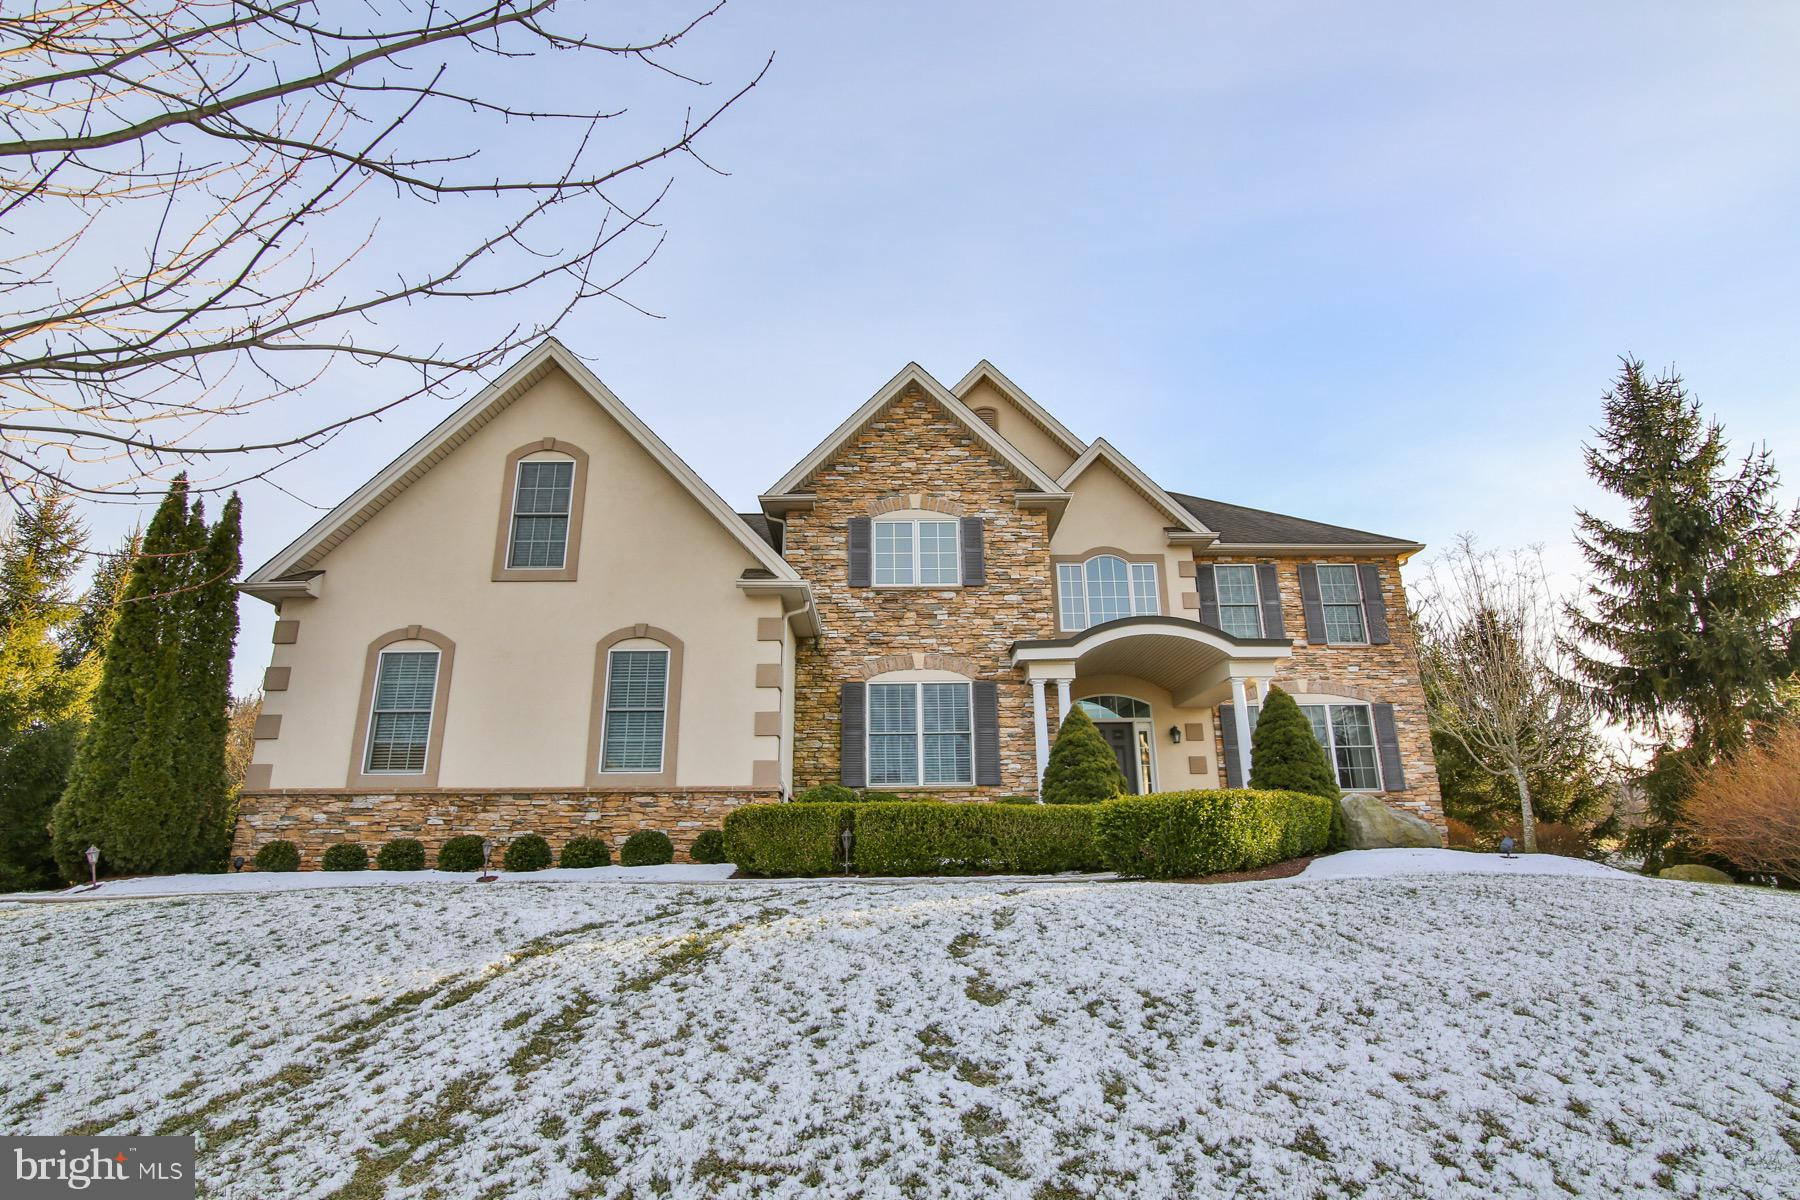 3380 N CONCORD DRIVE, CENTER VALLEY, PA 18034